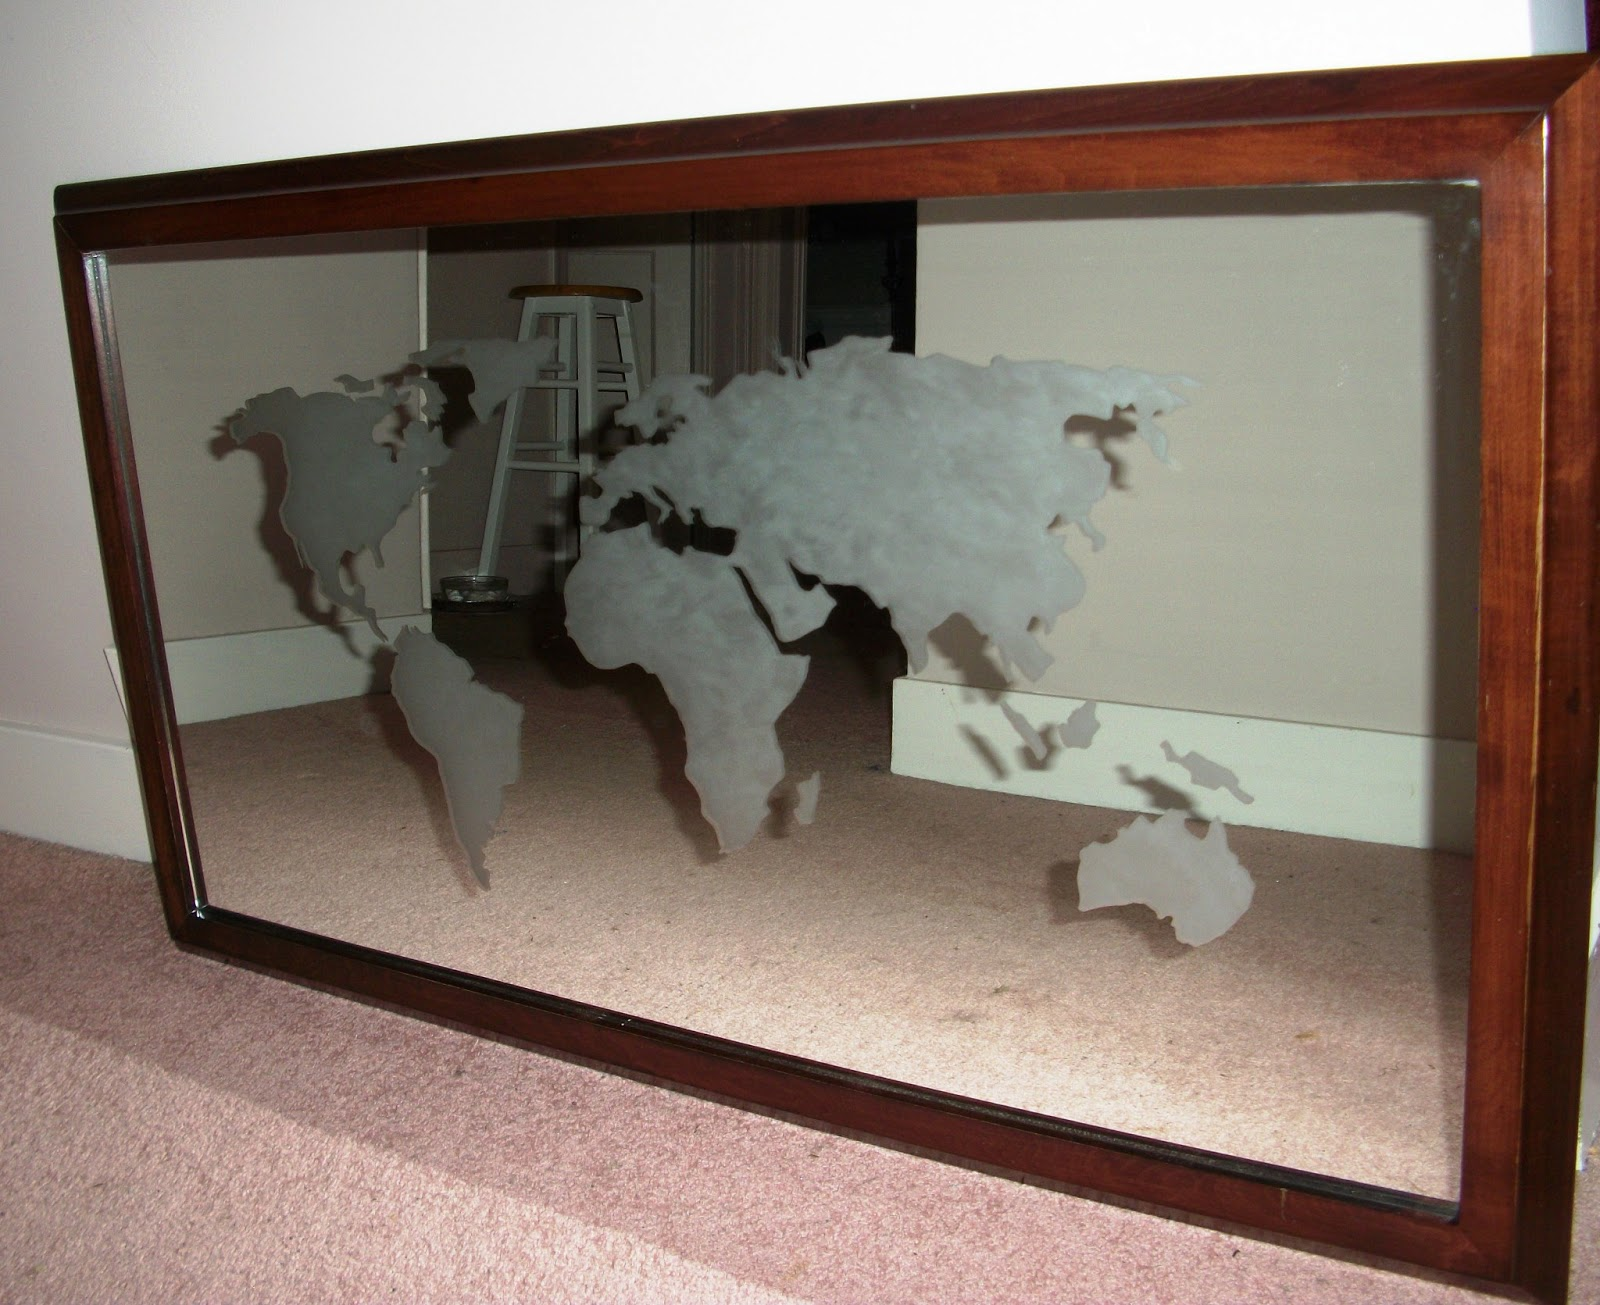 Fay grayson home easy art world map mirror a functional art piece for your bedroom office or to create interest in the hallway you can use acid etching cream on any glass surface gumiabroncs Gallery